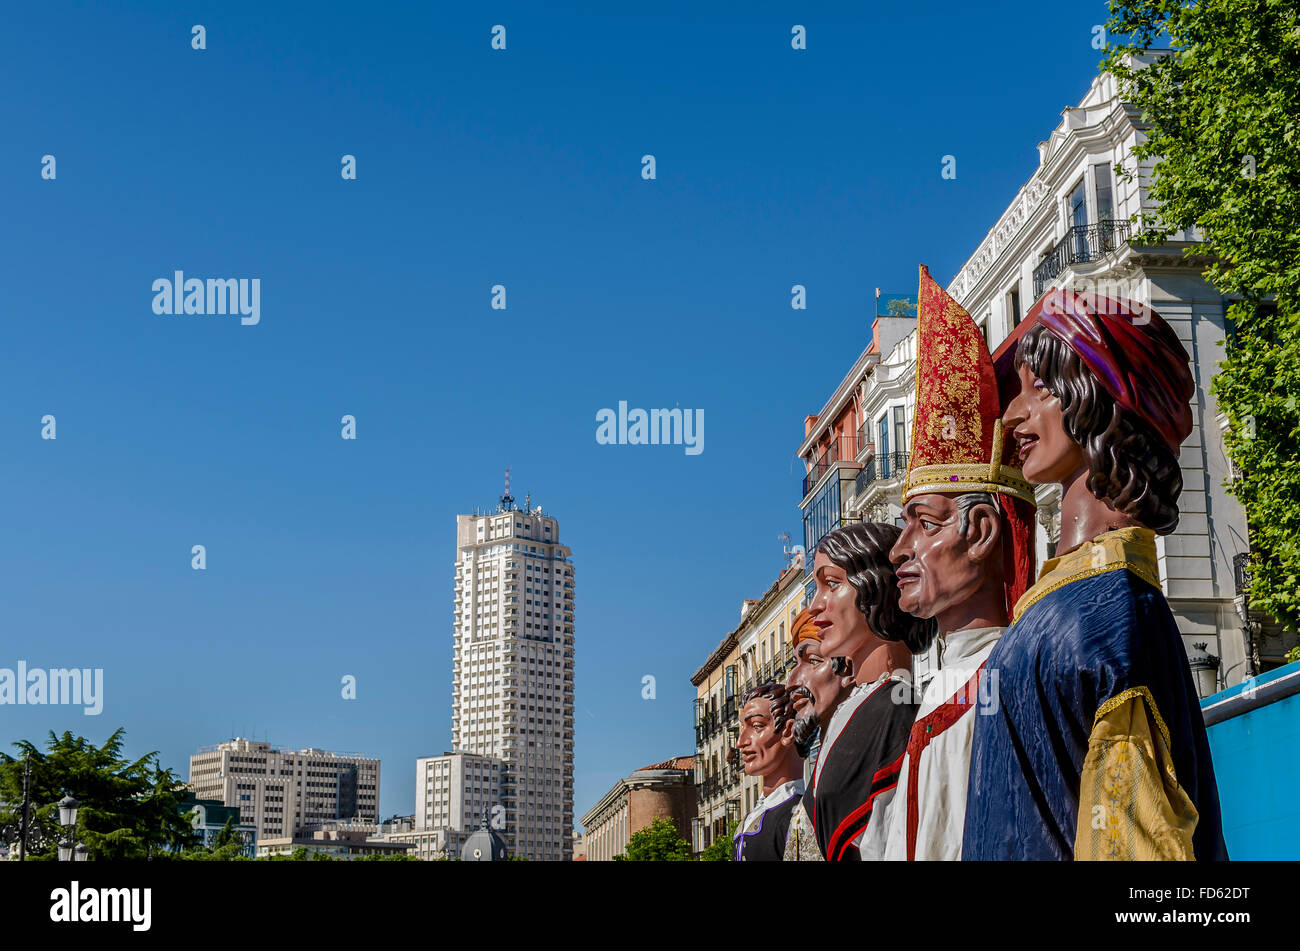 View of a giant models near of Madrid tower, Madrid city, Spain - Stock Image